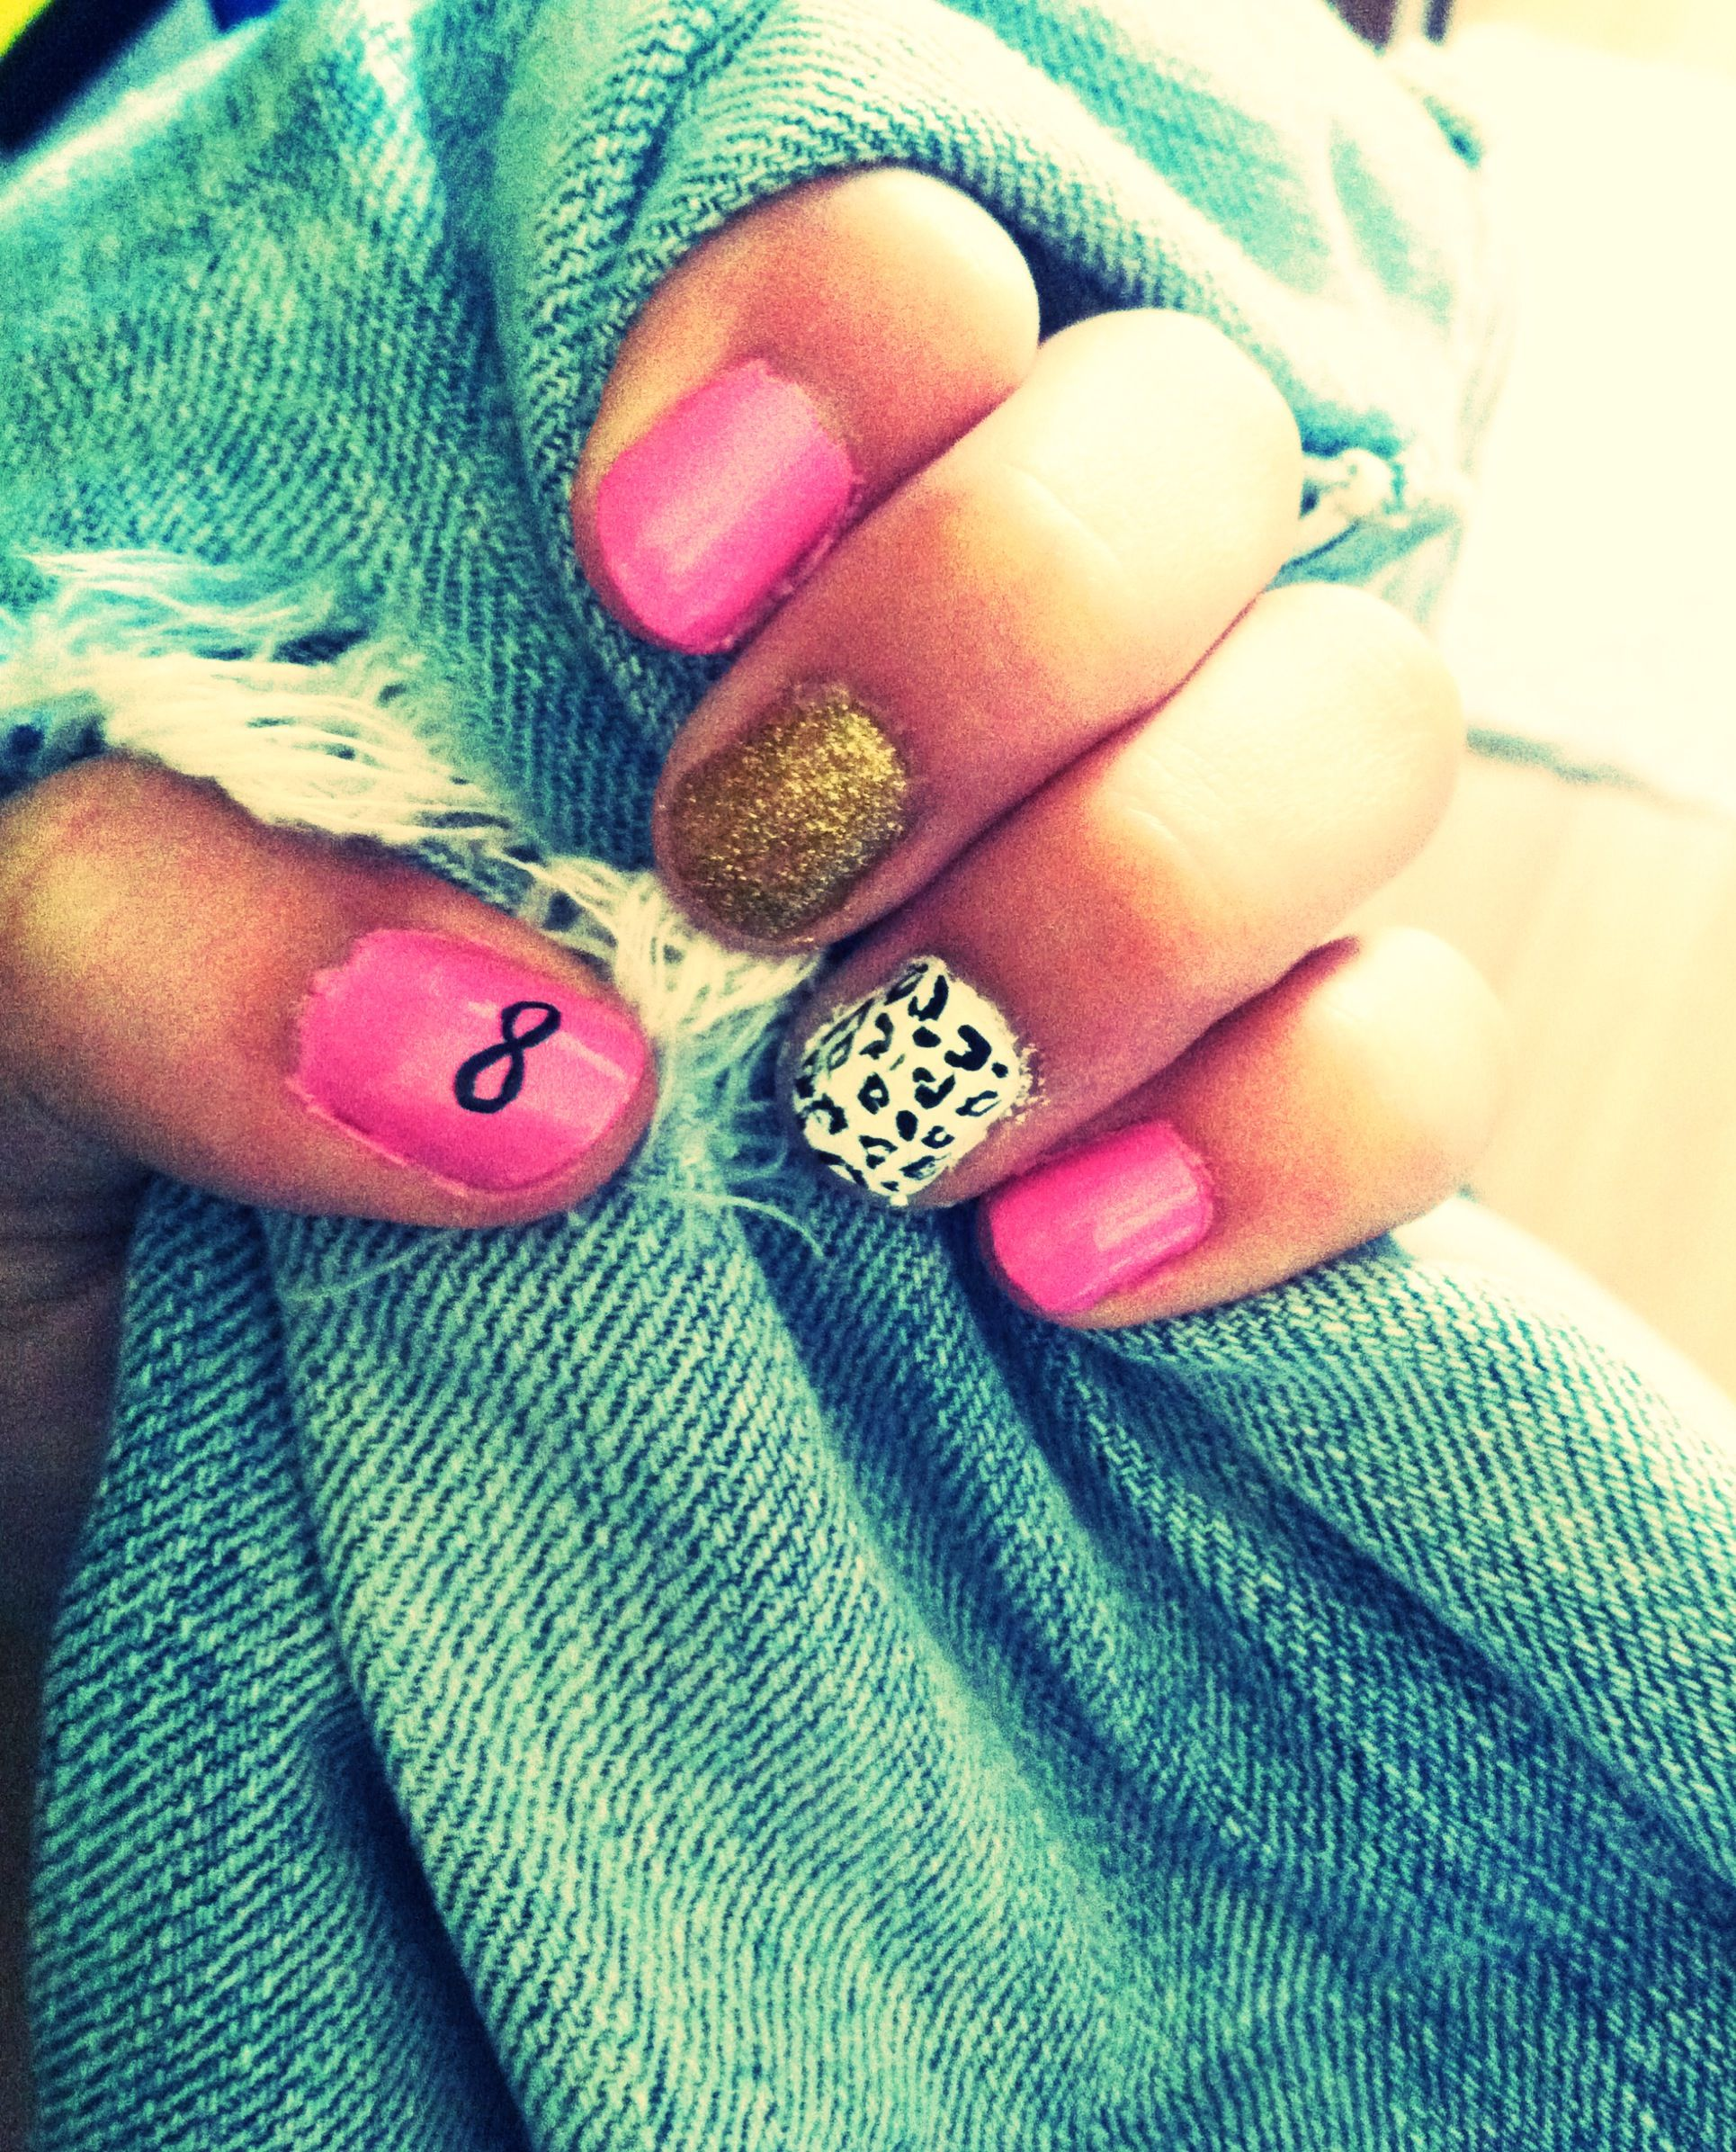 Infinity Nails With Cheetah And Gold